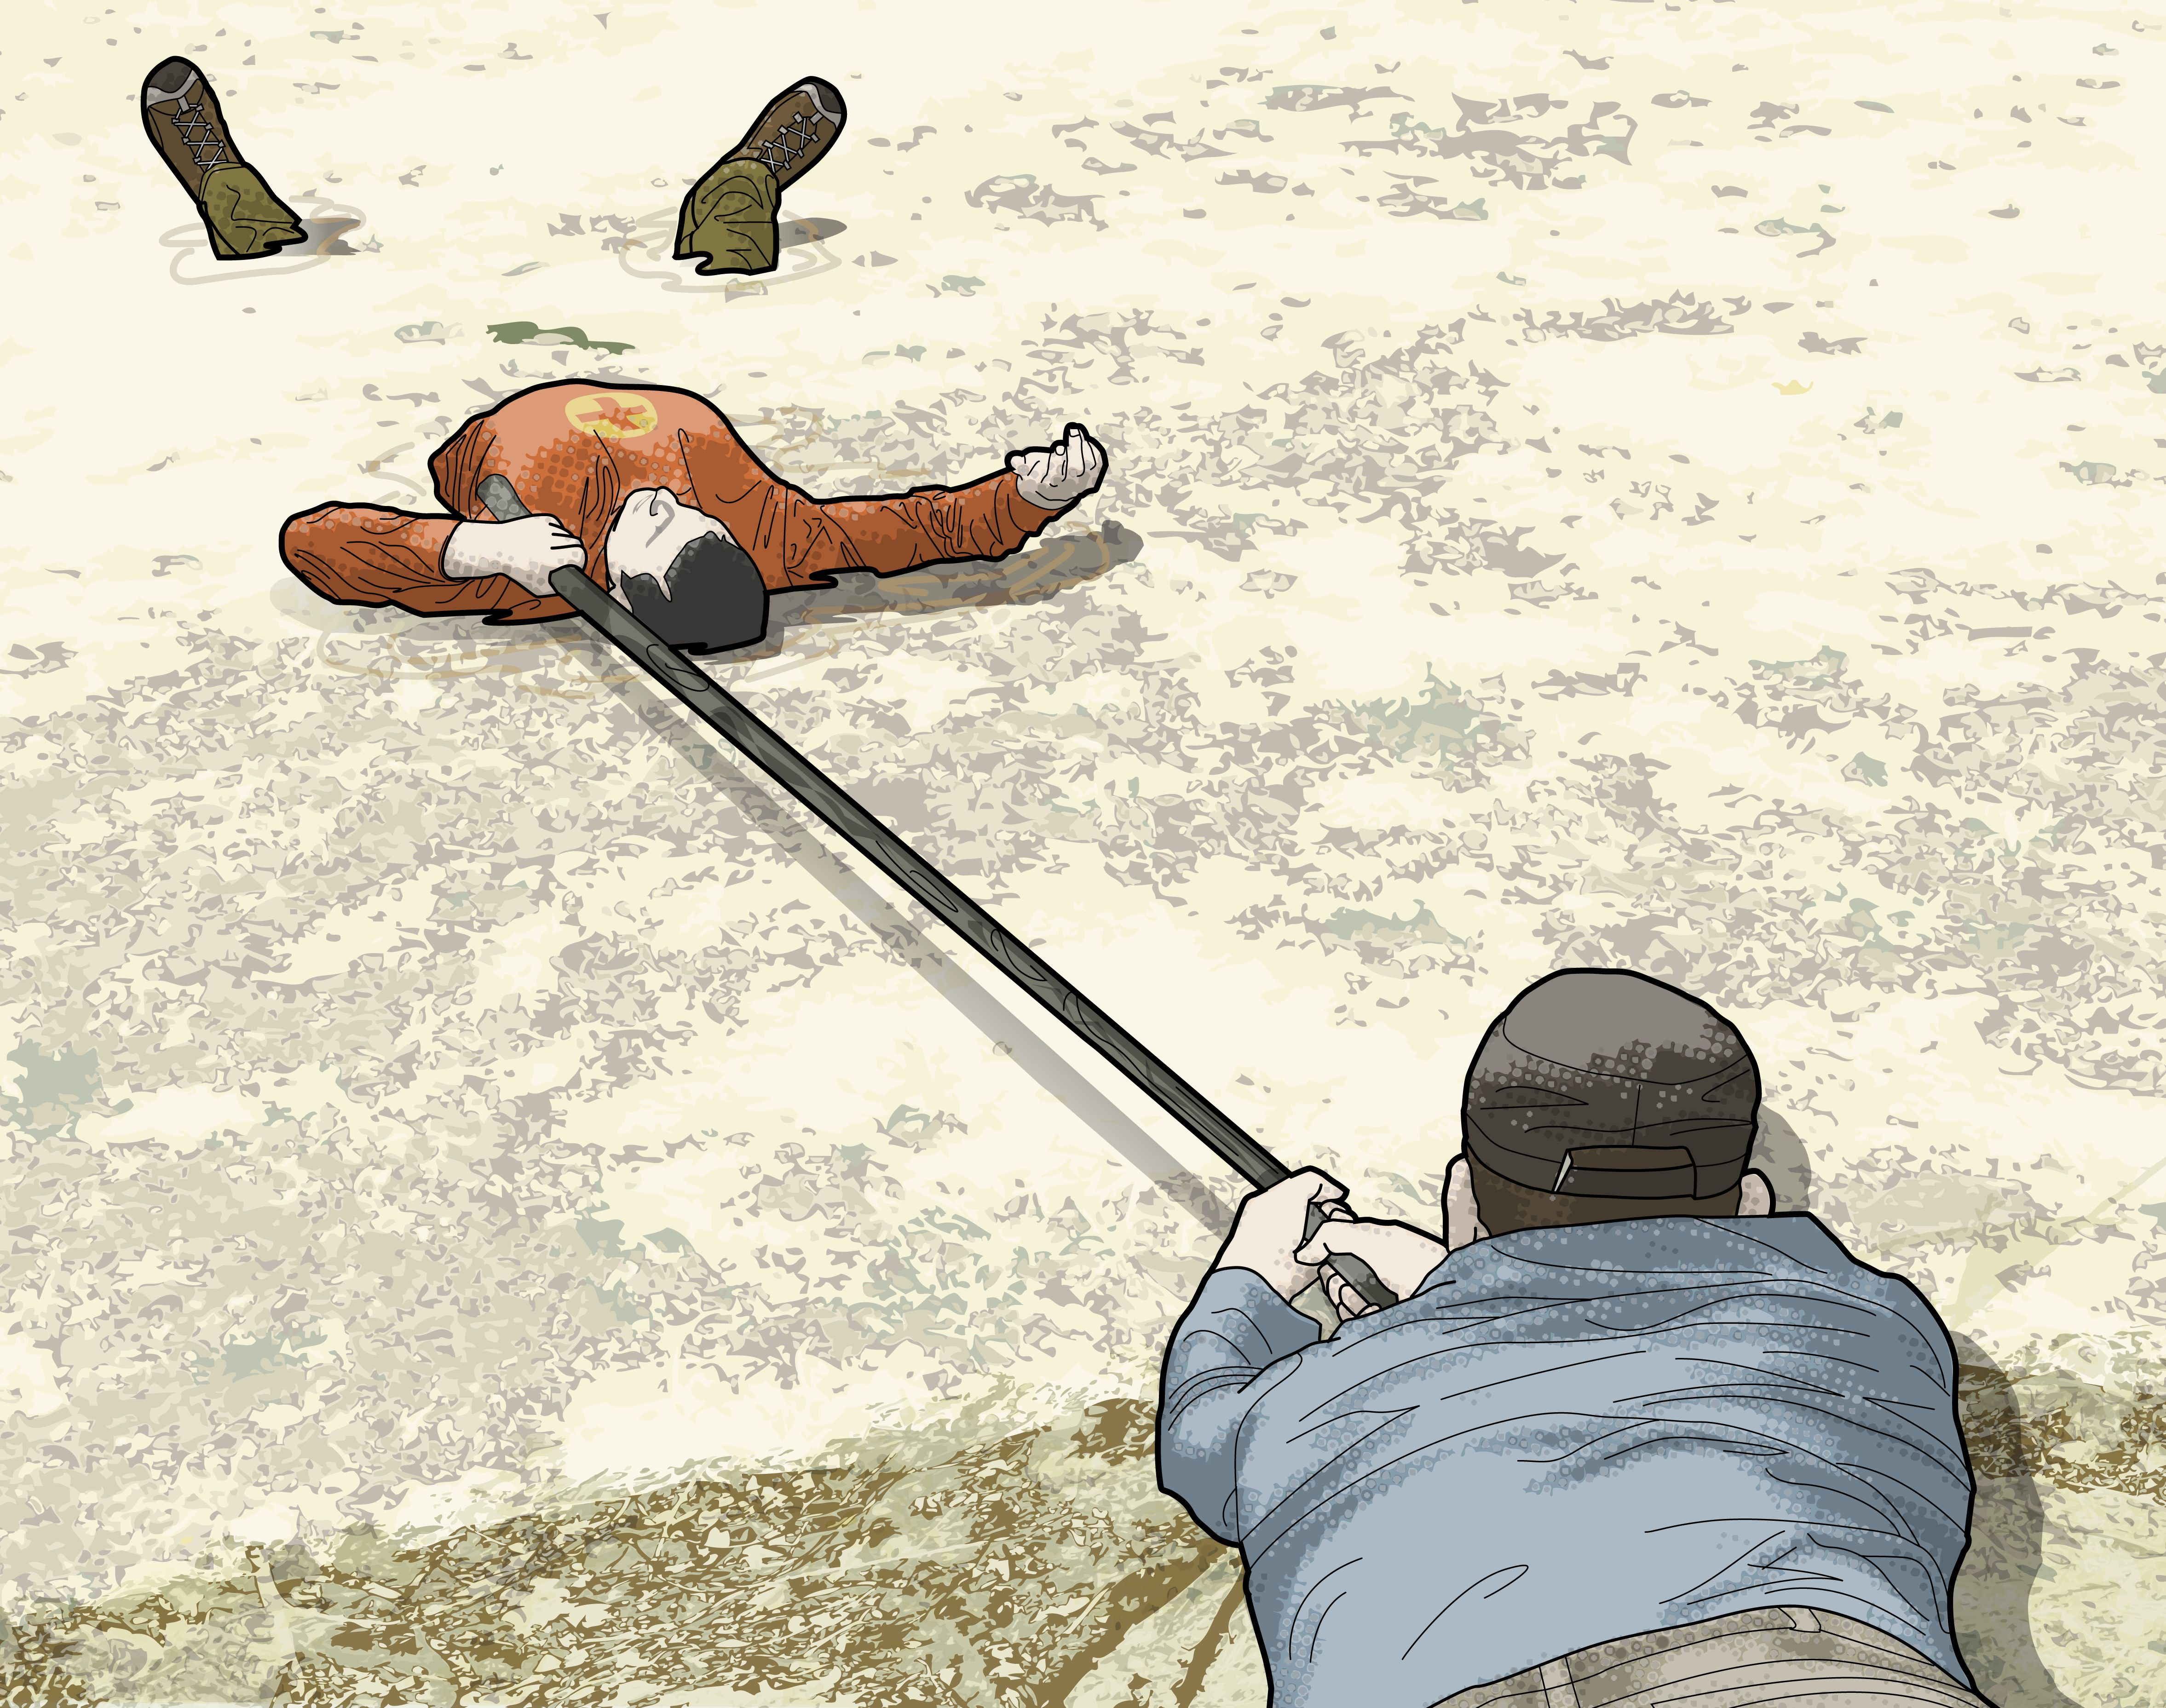 Escape from quicksand by leaning onto your back to float. A rescuer can assist by offering a stick to slowly pull you to safety.